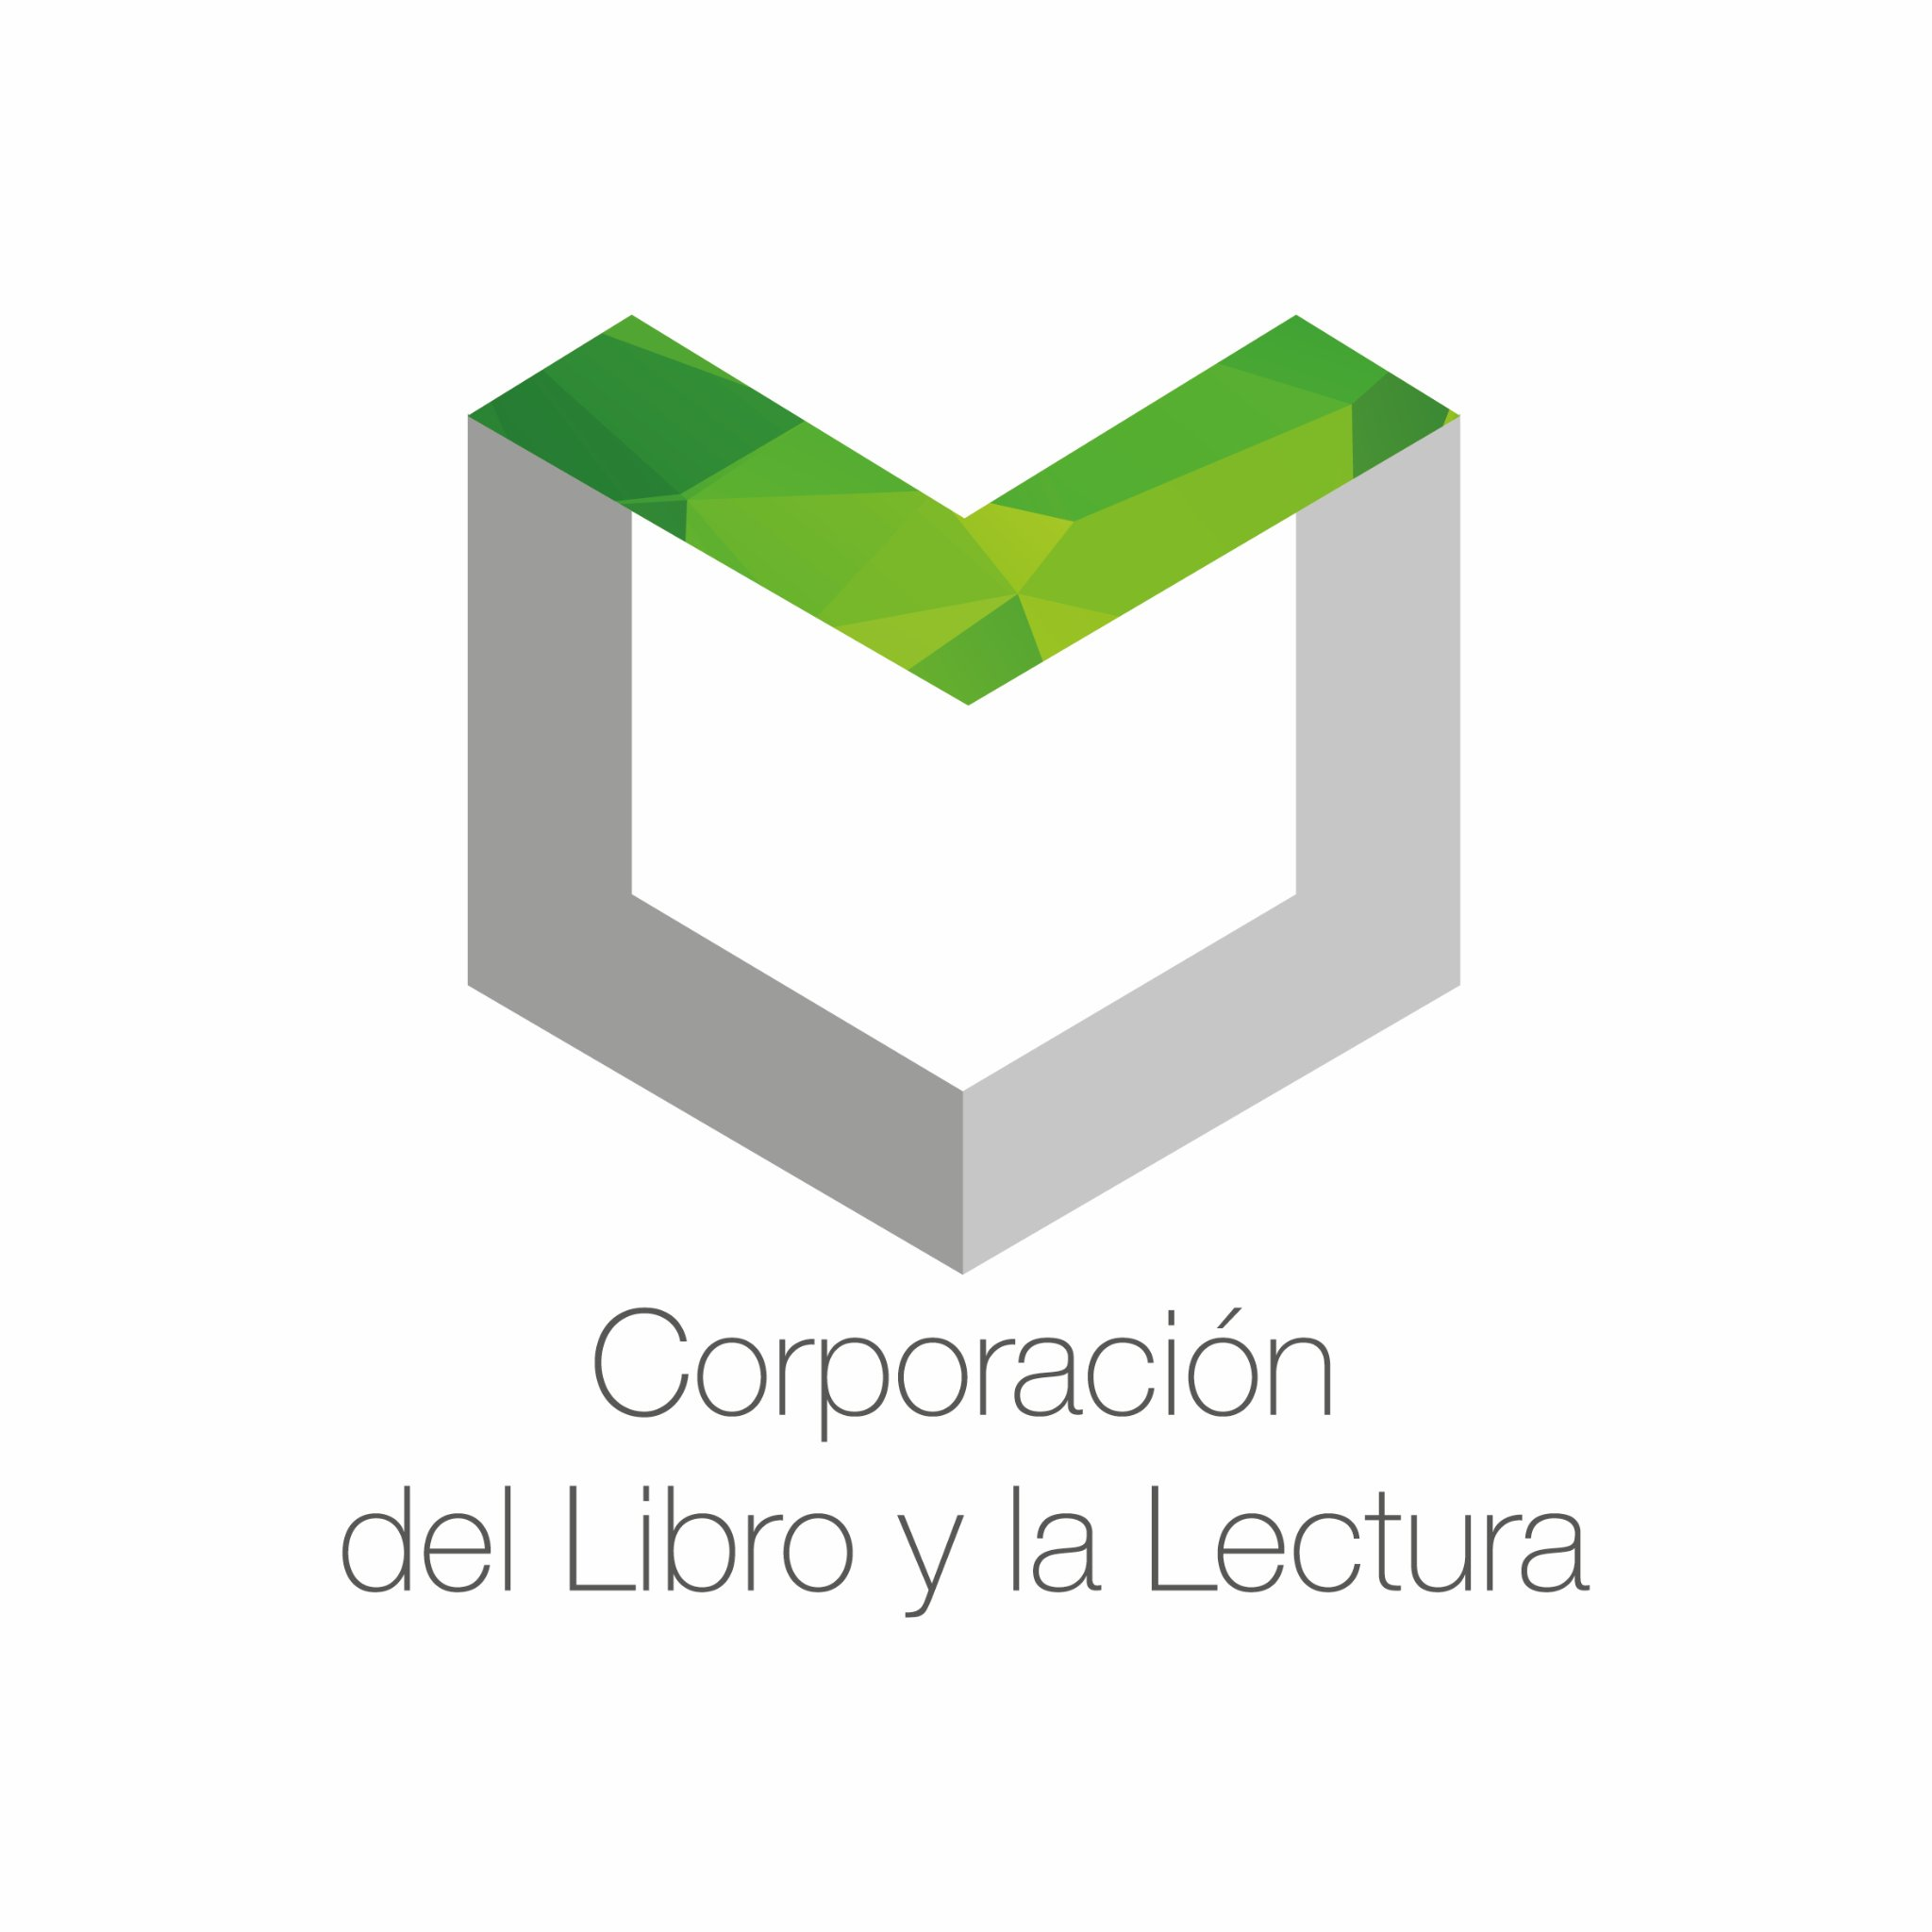 Forget To Remember Libro Libroylectura Corp Del Libro Twitter